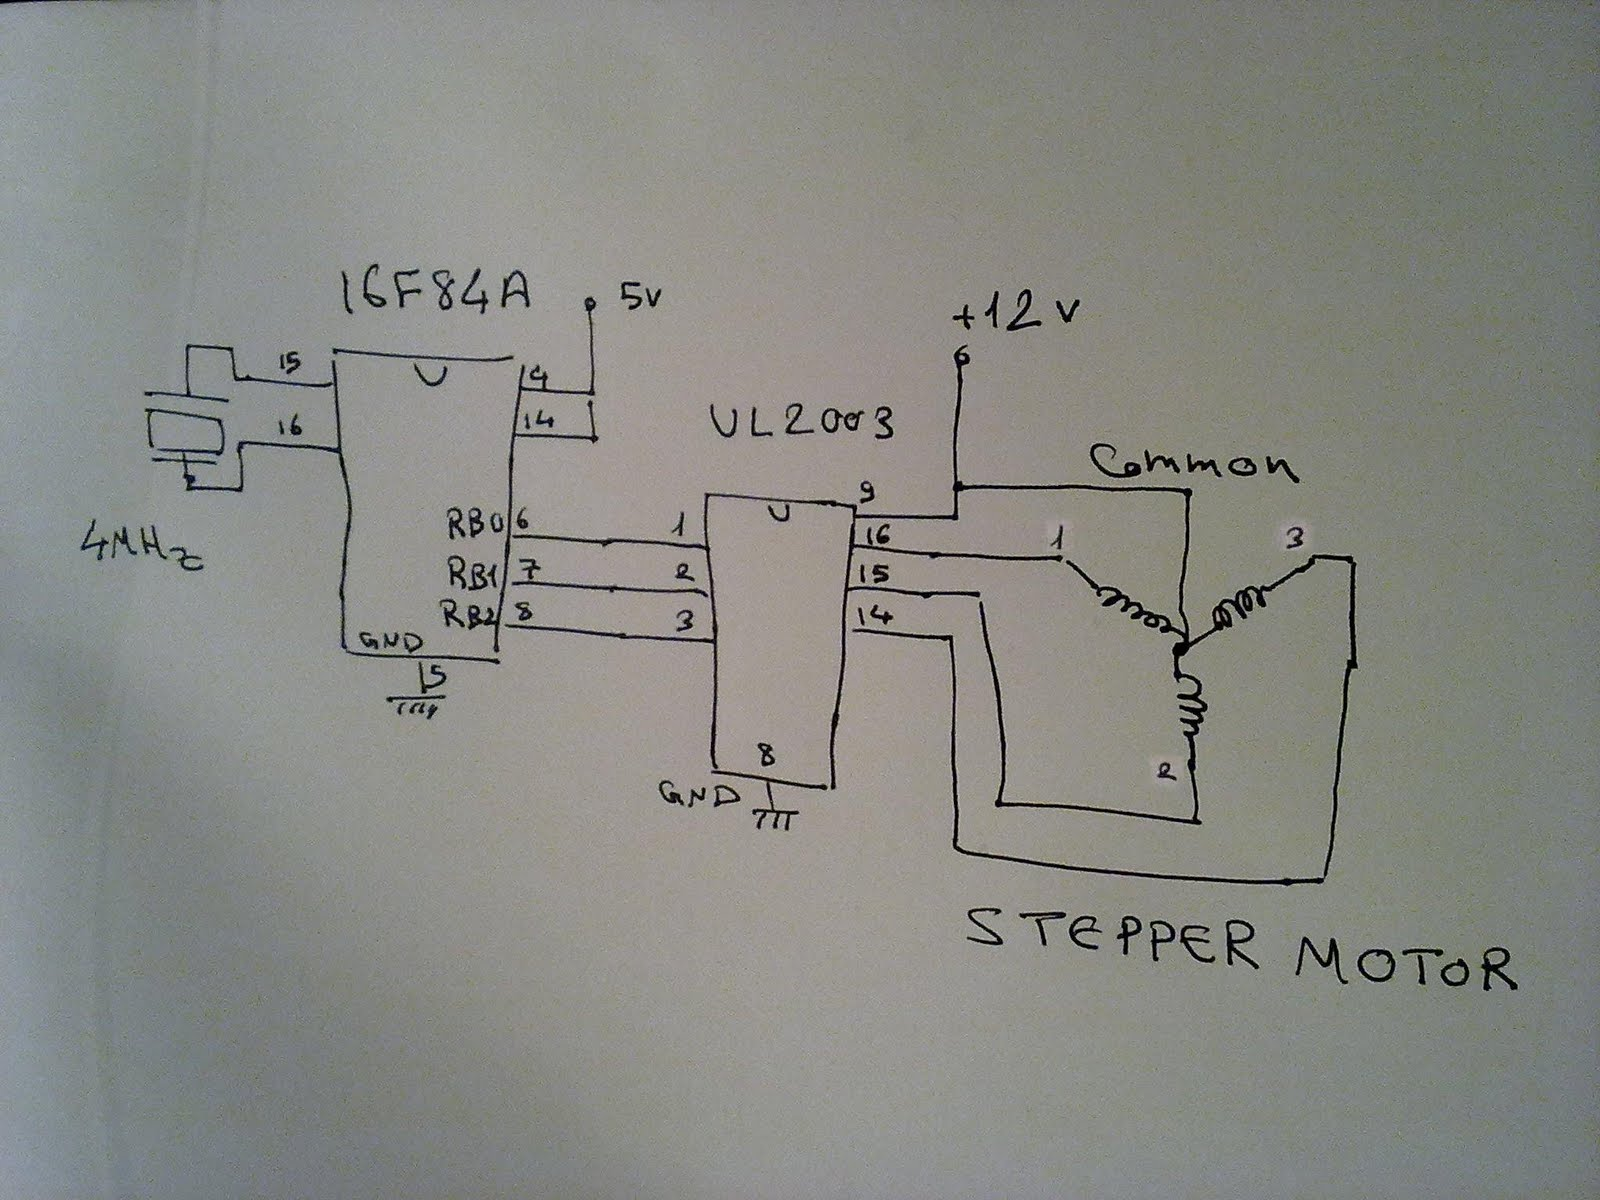 Schematic Diagram Using Ppk16rs Device